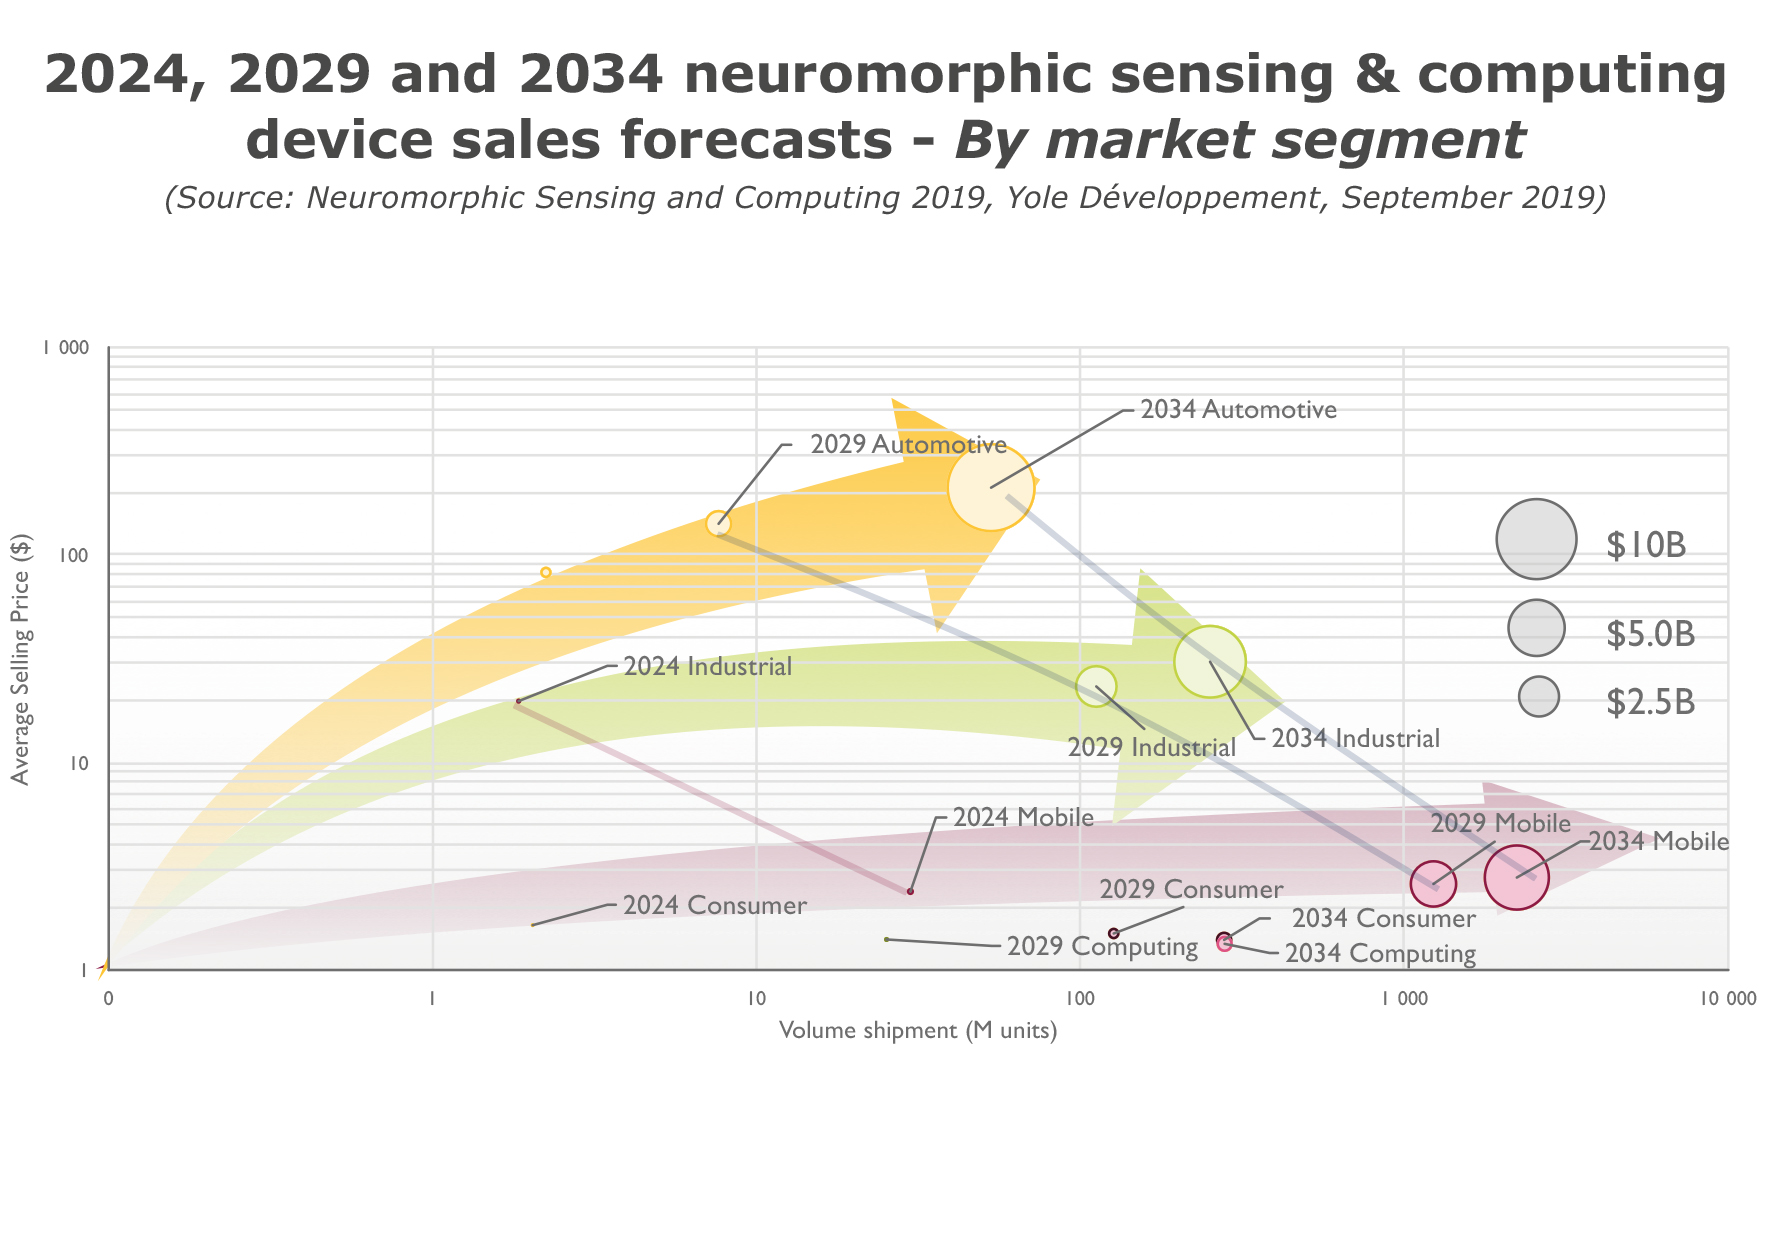 2024-2029-2034 neuromorphic device sales forecasts